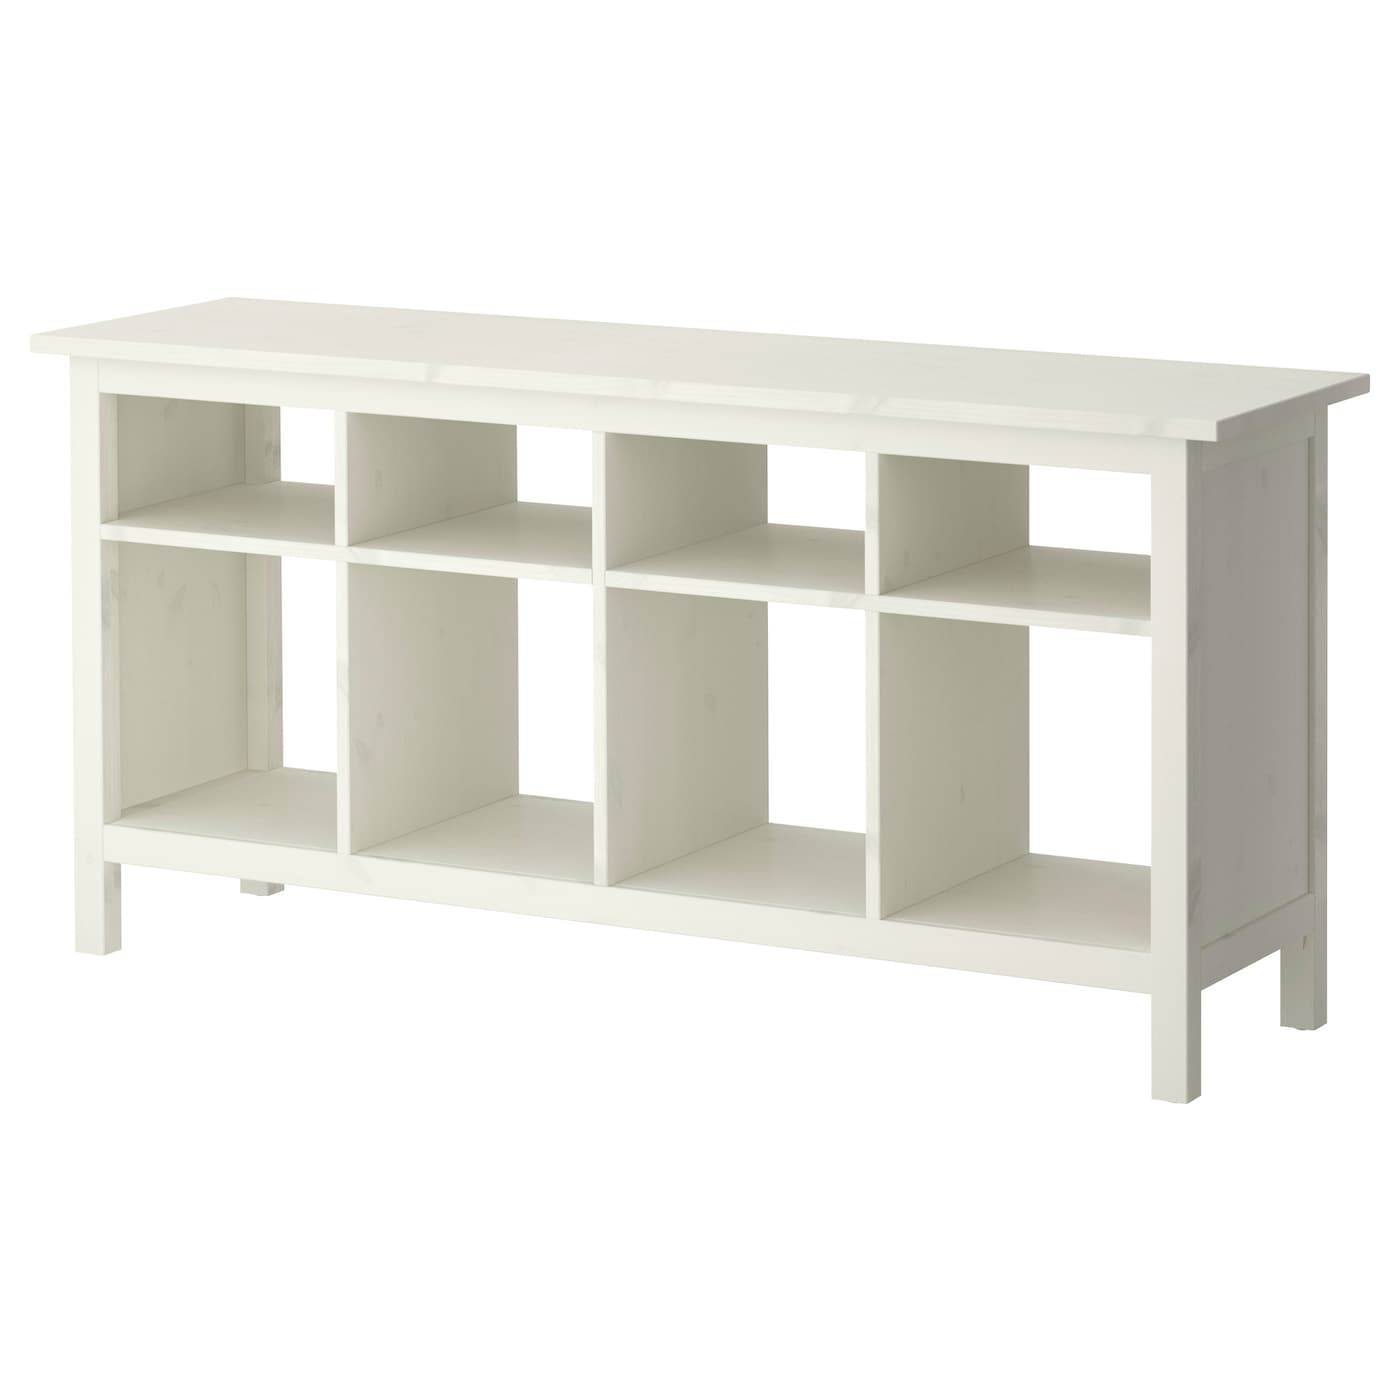 Hemnes Coffee Table White Stain 118x75 Cm: HEMNES Console Table White Stain 157 X 40 Cm